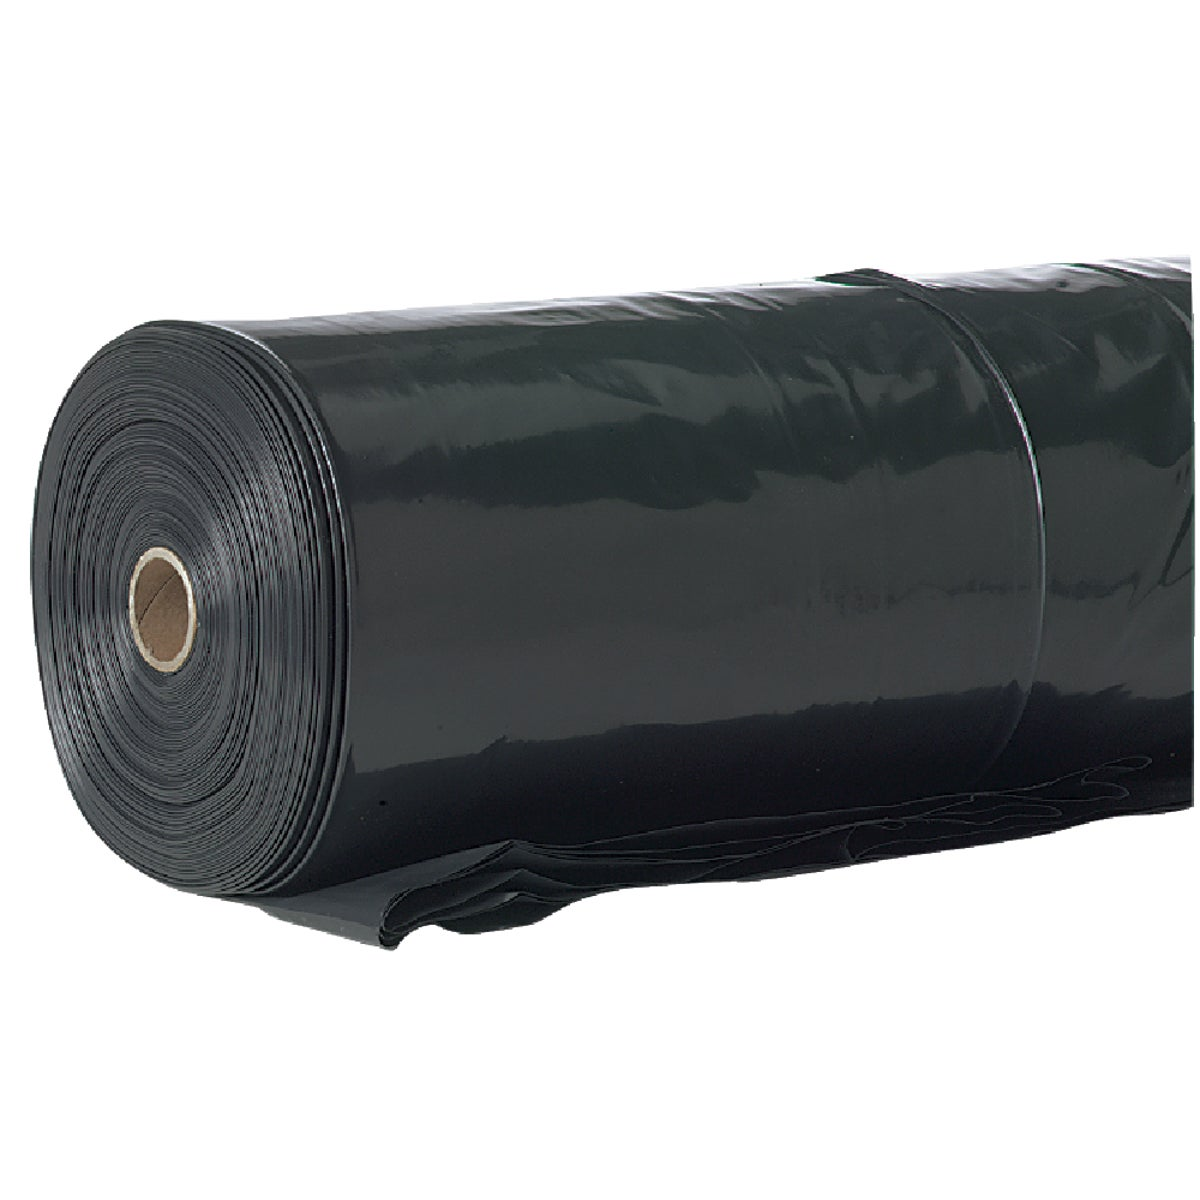 20X100 10M BLK POLY FILM - 626109 by Berry Plastics